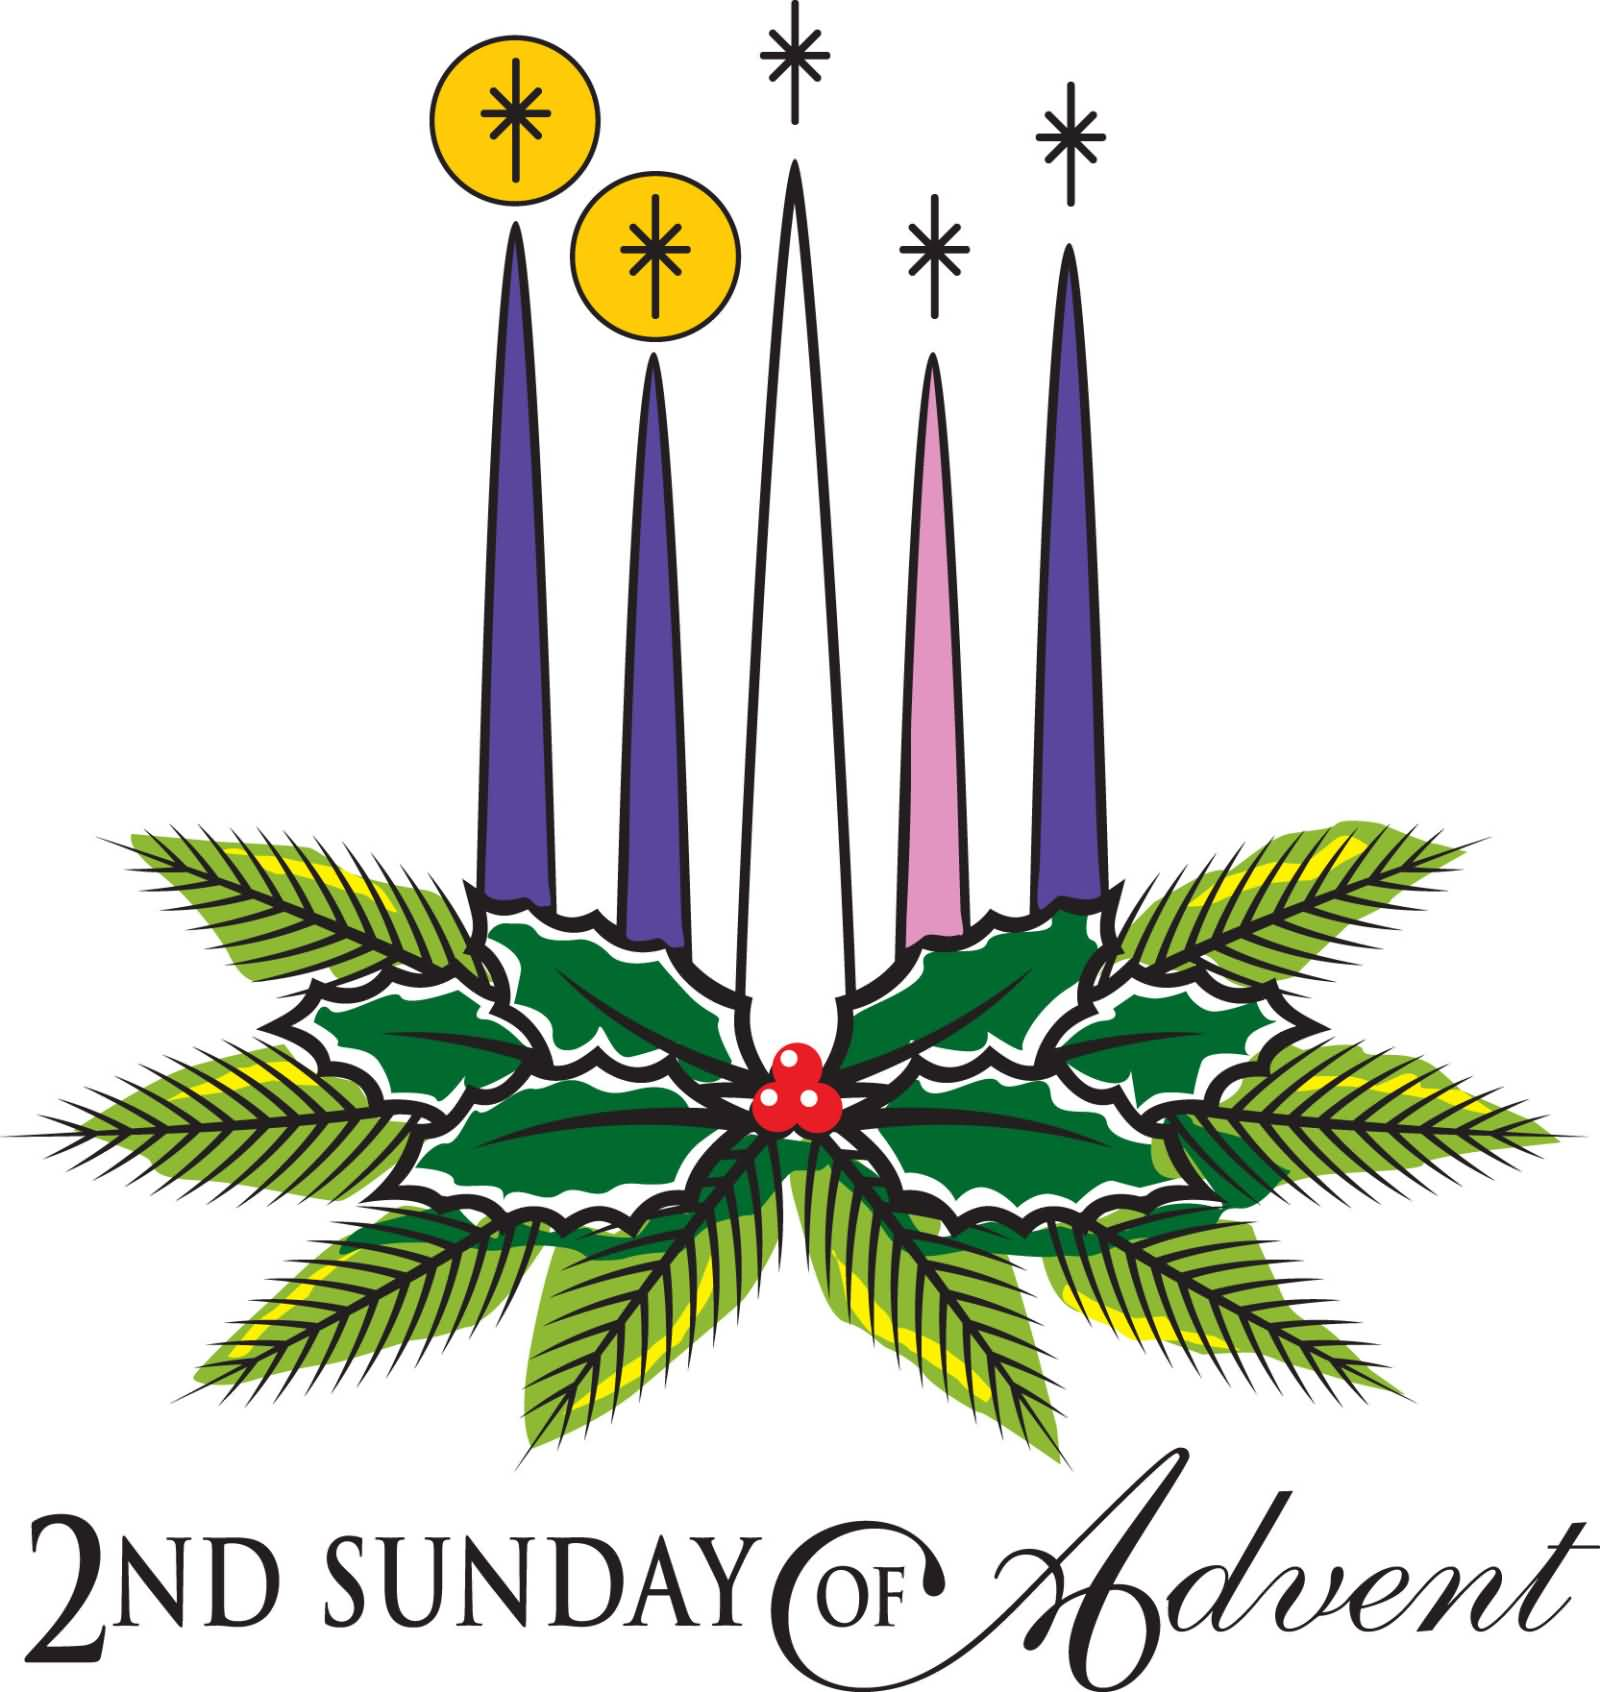 Second sunday of advent clipart 2